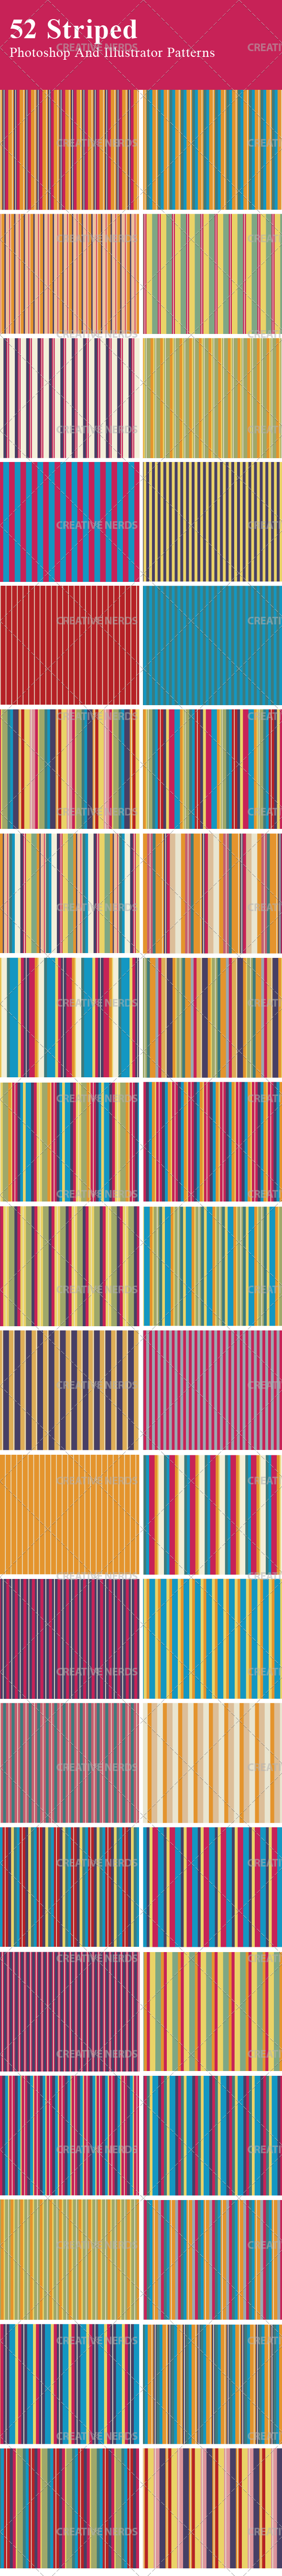 stripes pattern big preview 50+ Seamless Striped Vector Patterns